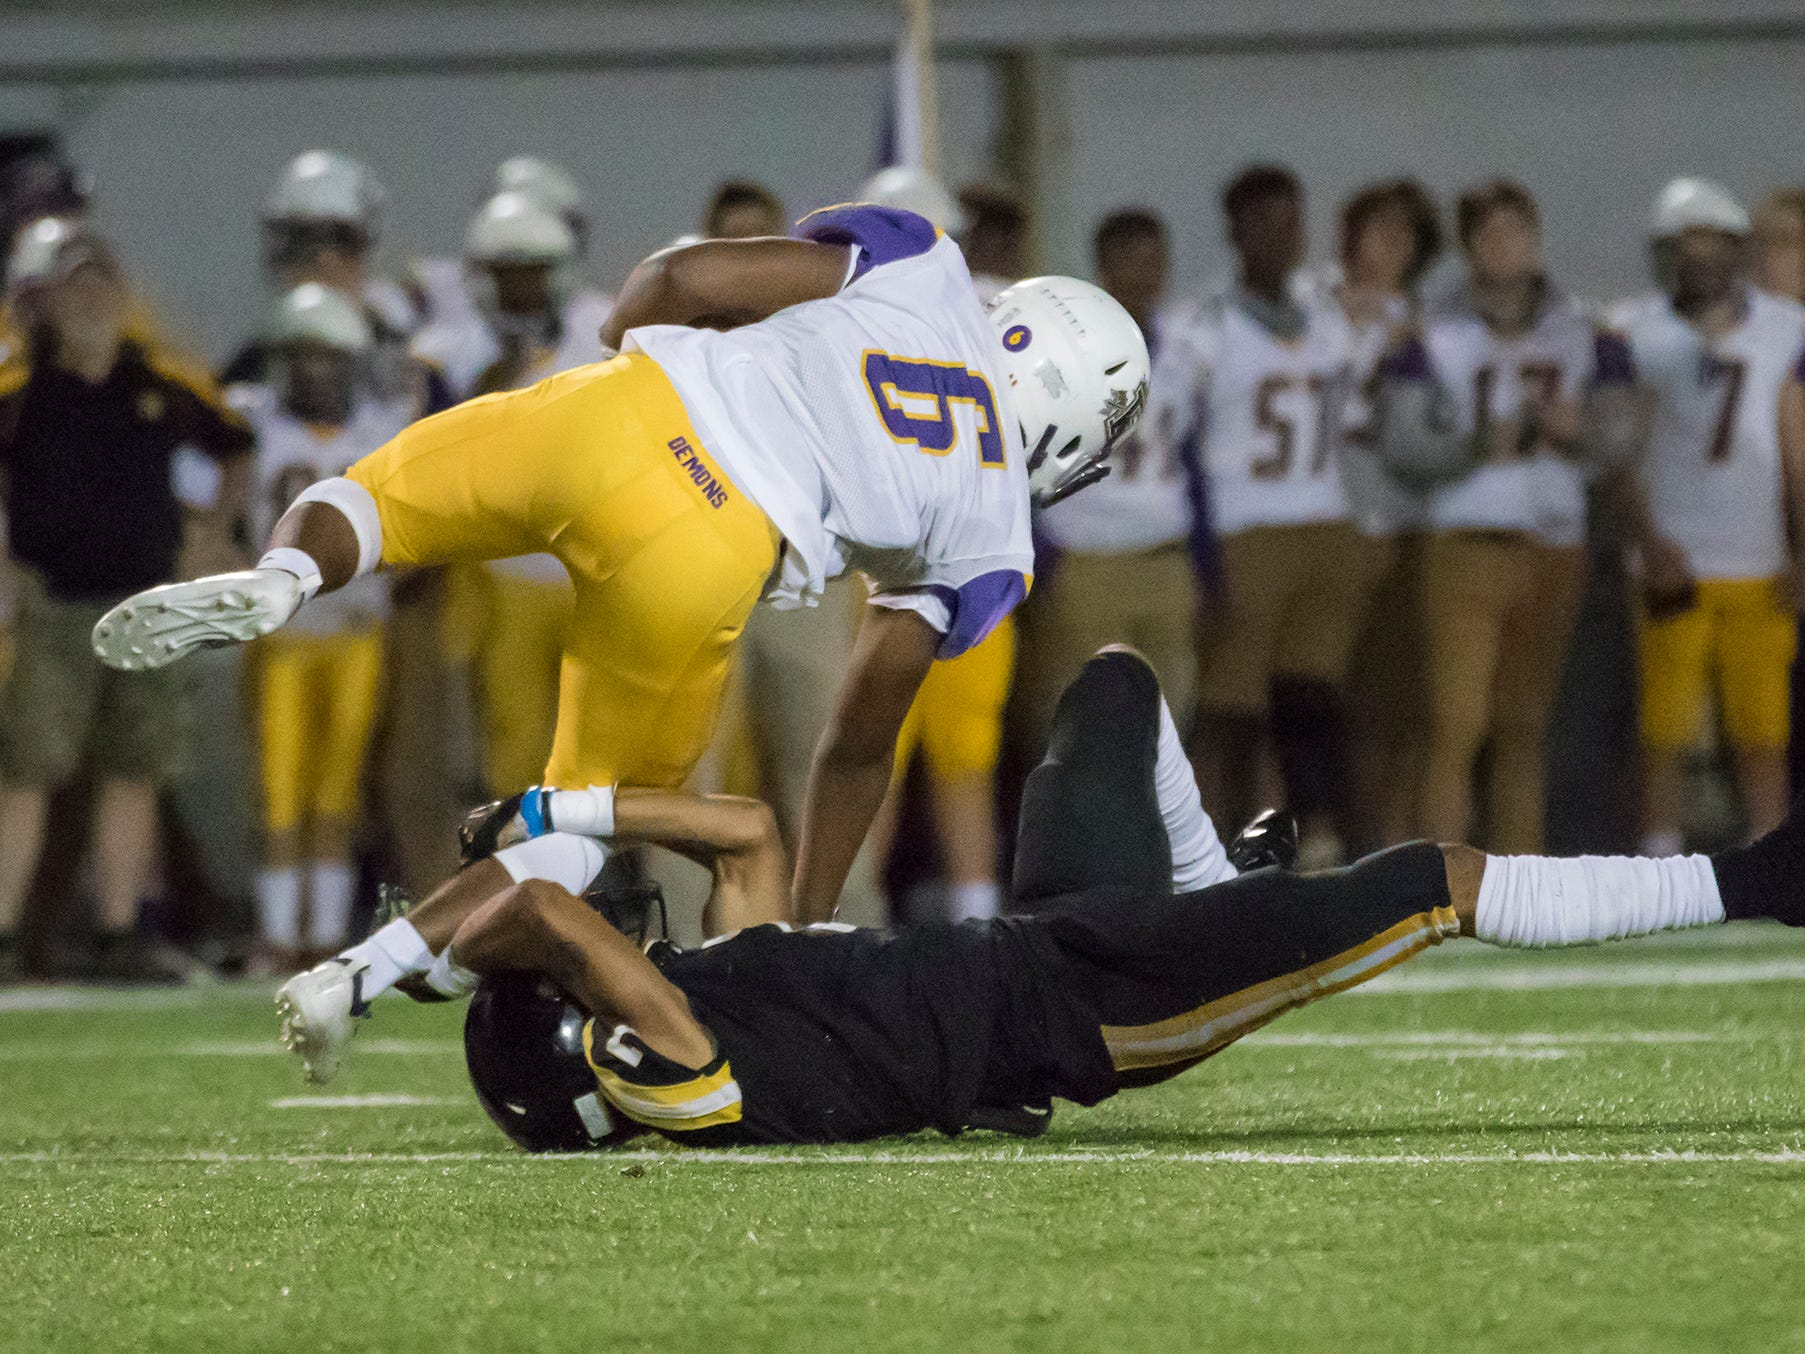 Neville defeated Franklinton Parish in a 48-20 rout at Neville High School in Monroe, La on Oct. 12.